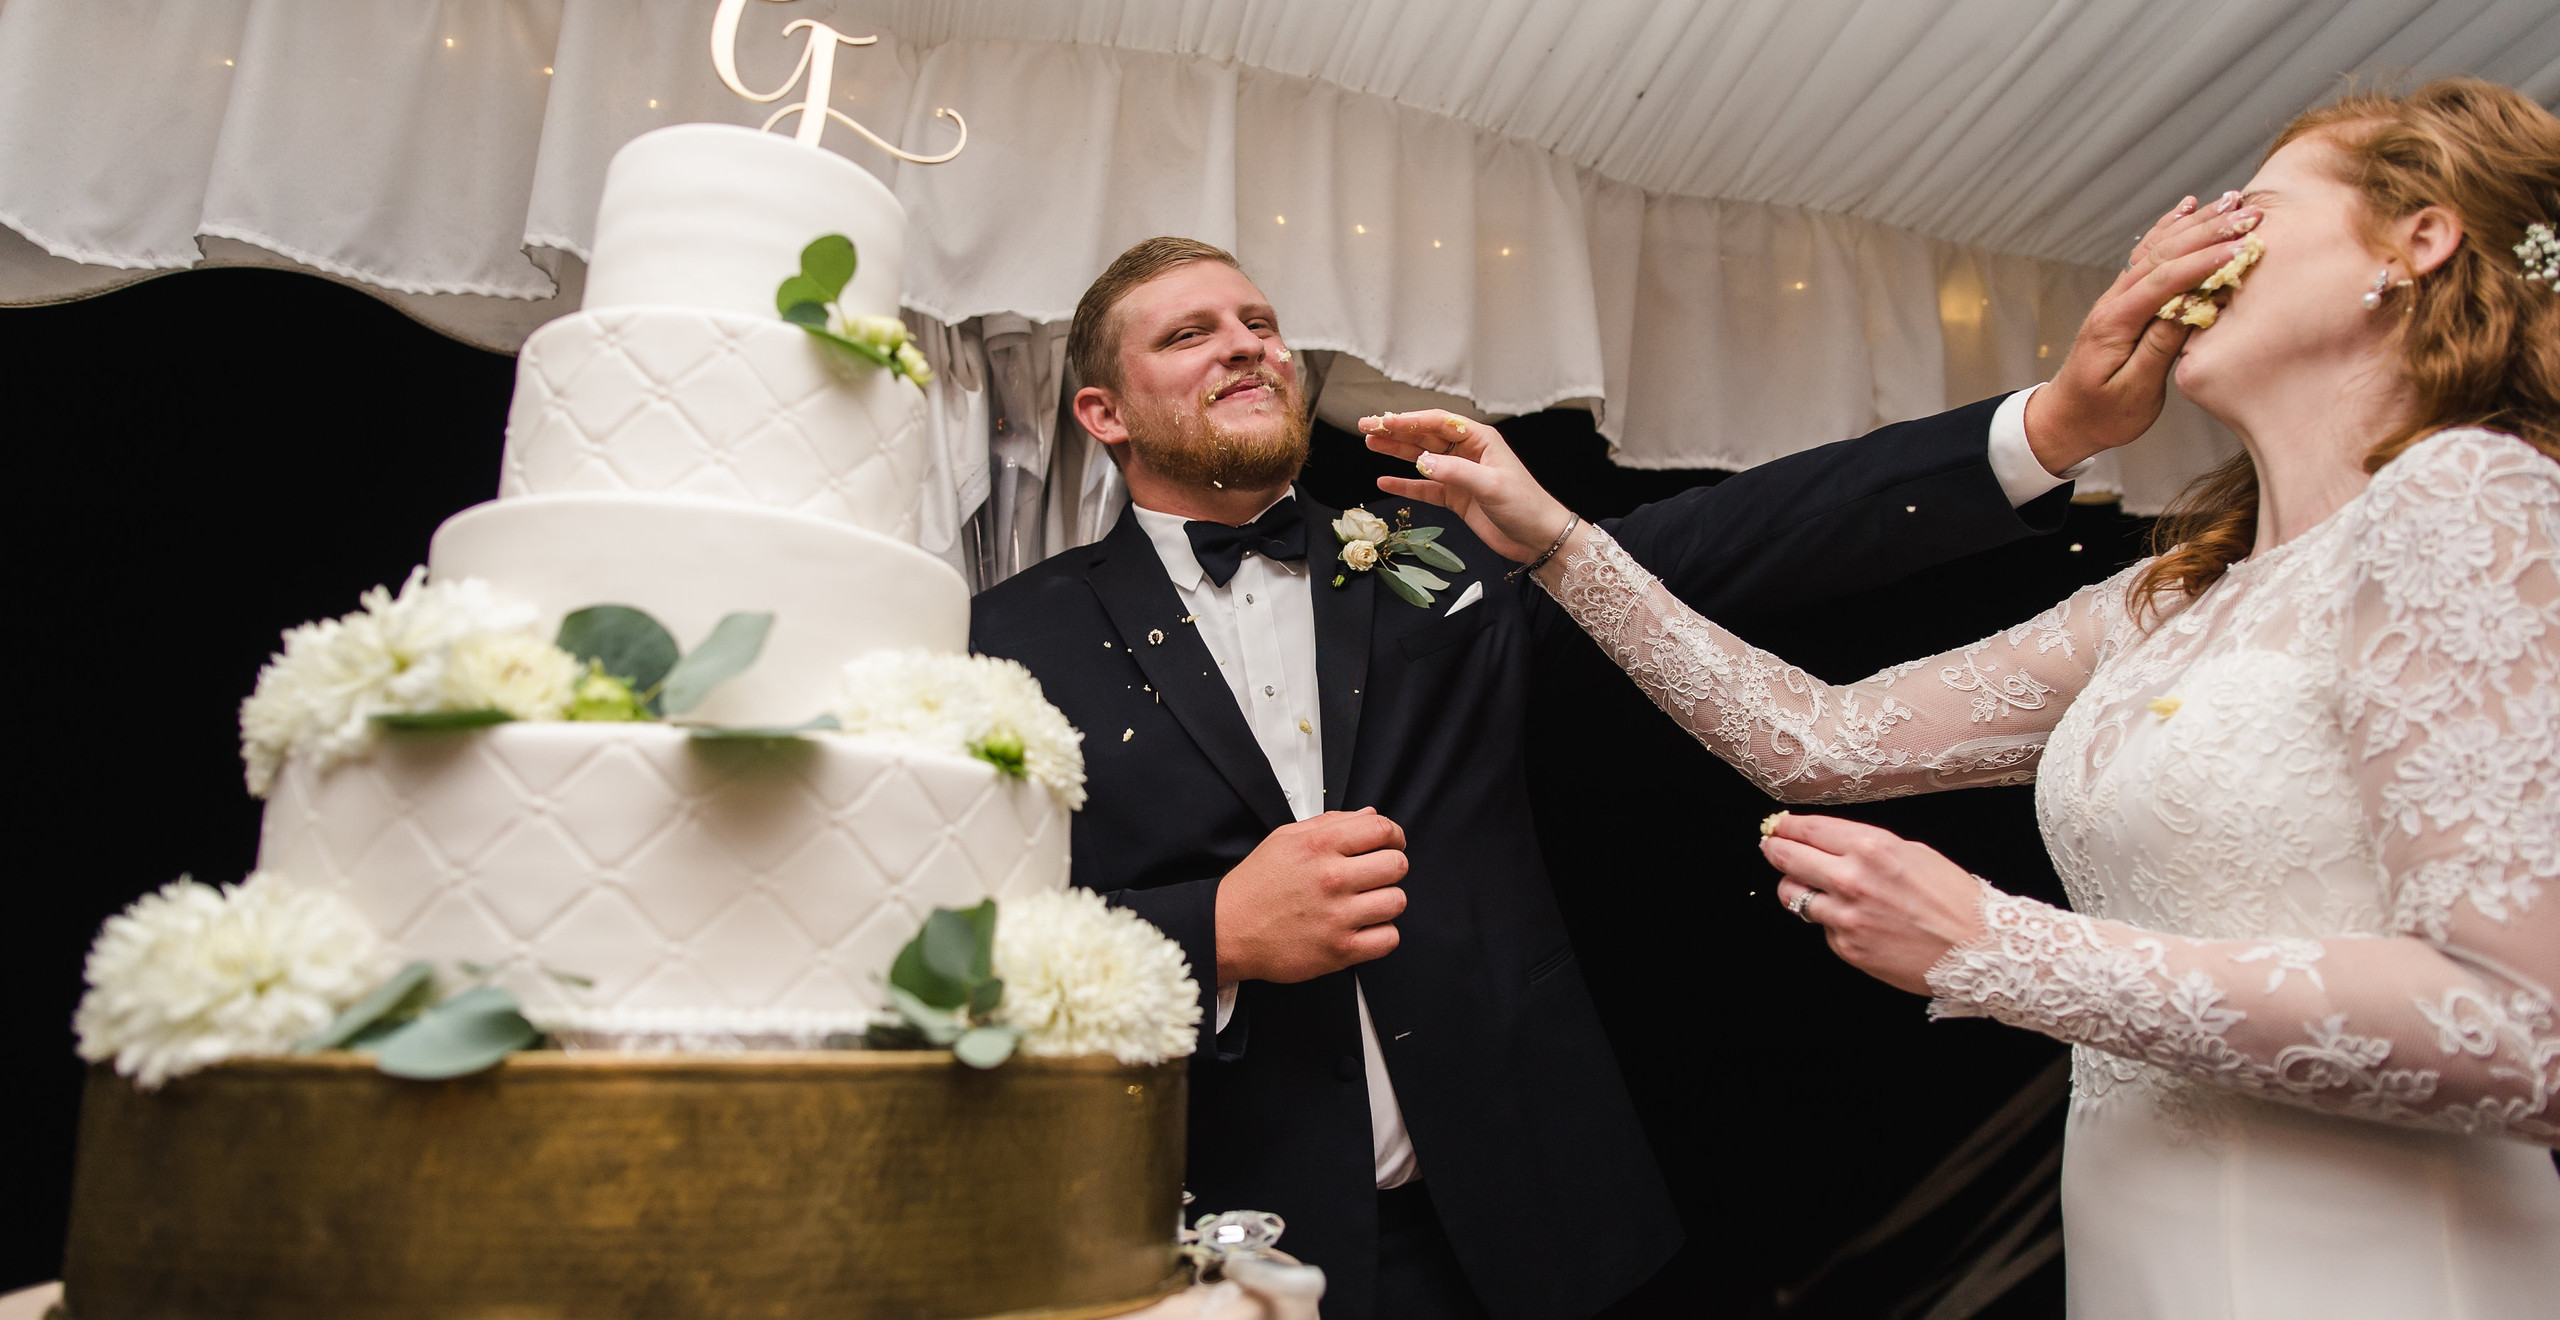 bride and groom smash cake into each other's faces